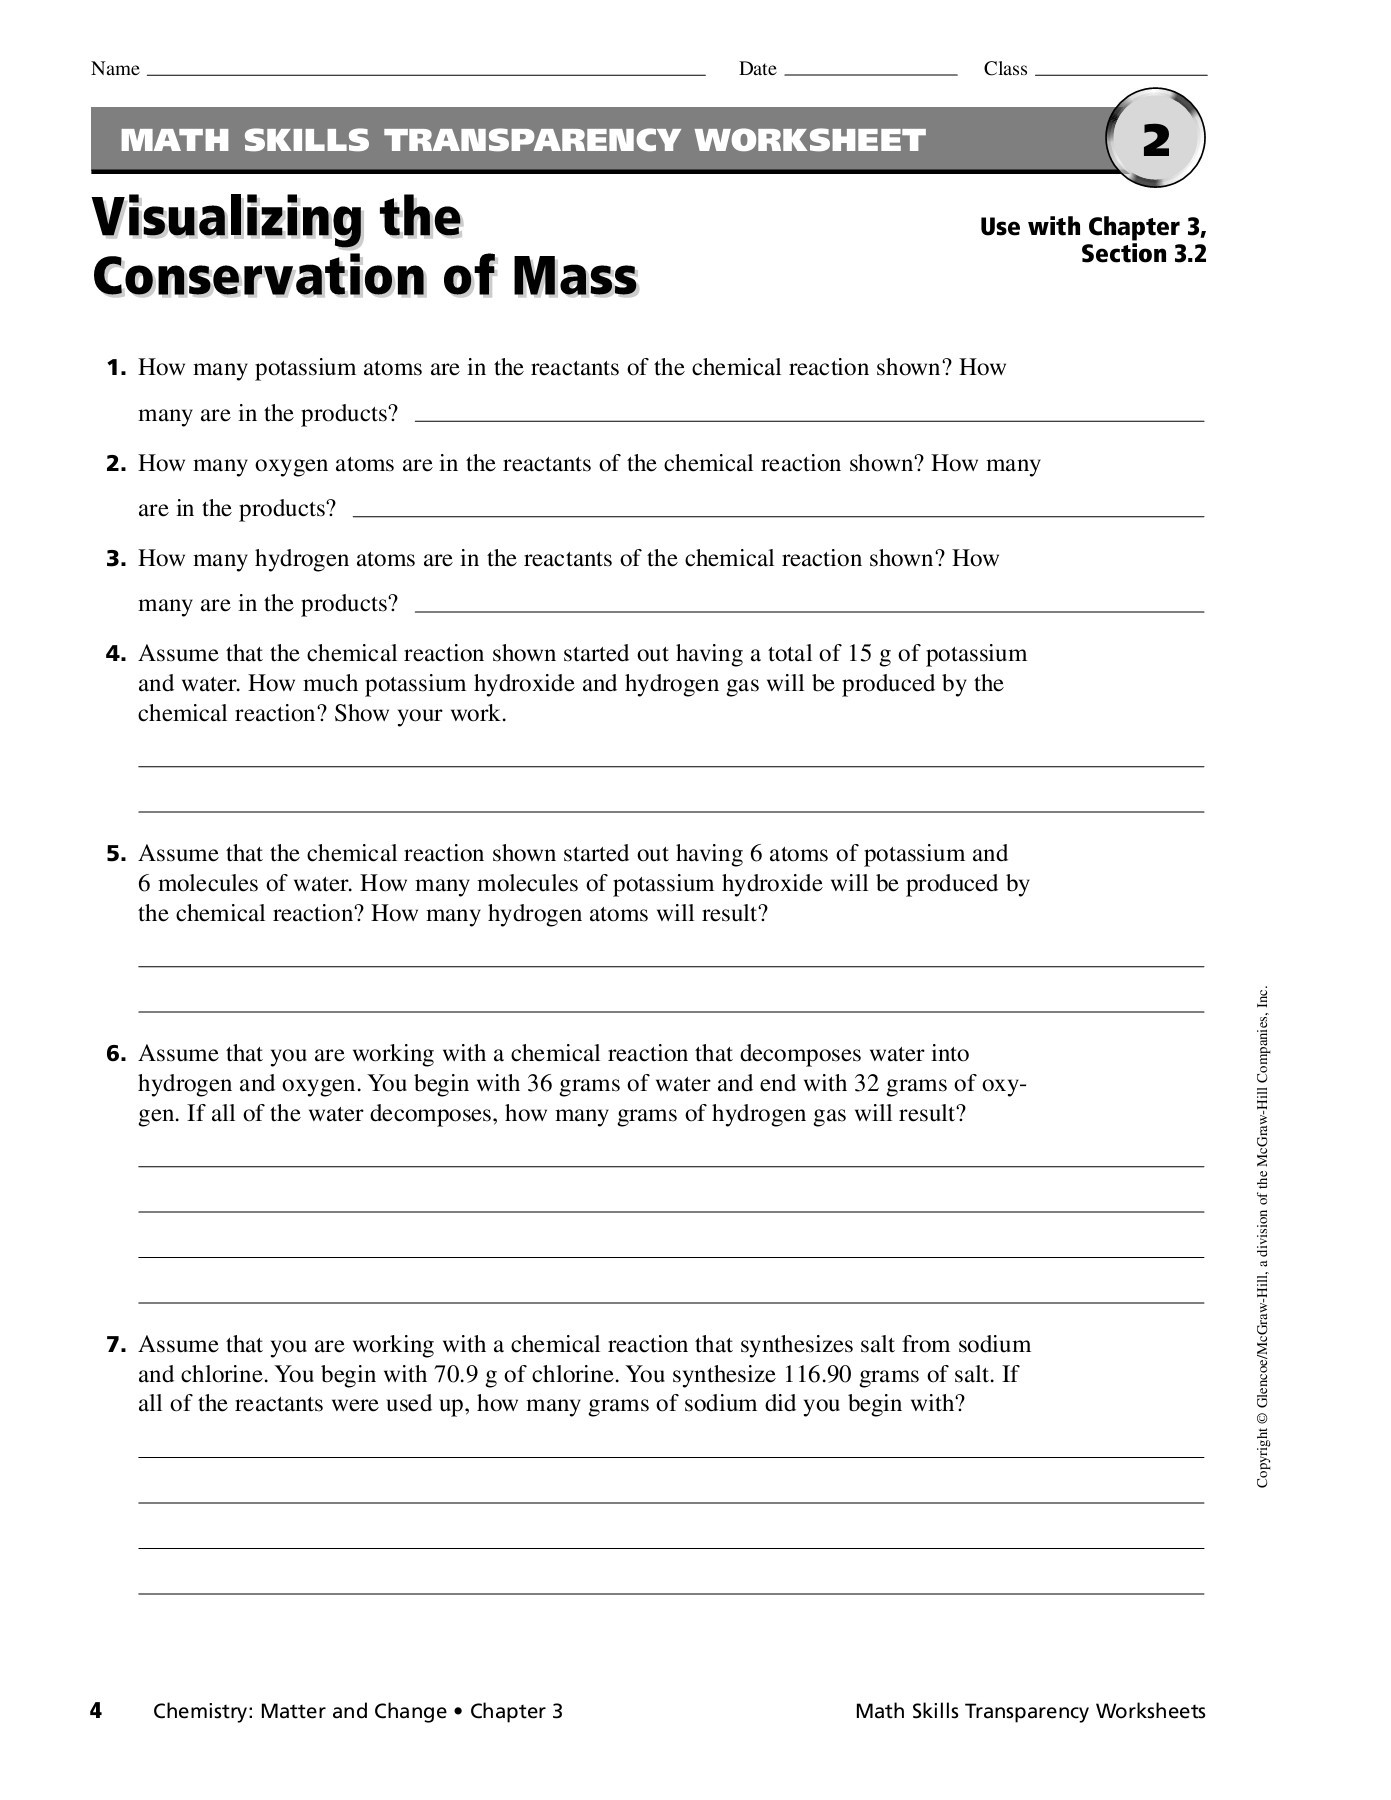 Teaching Transparency Worksheet Answers Chapter 9